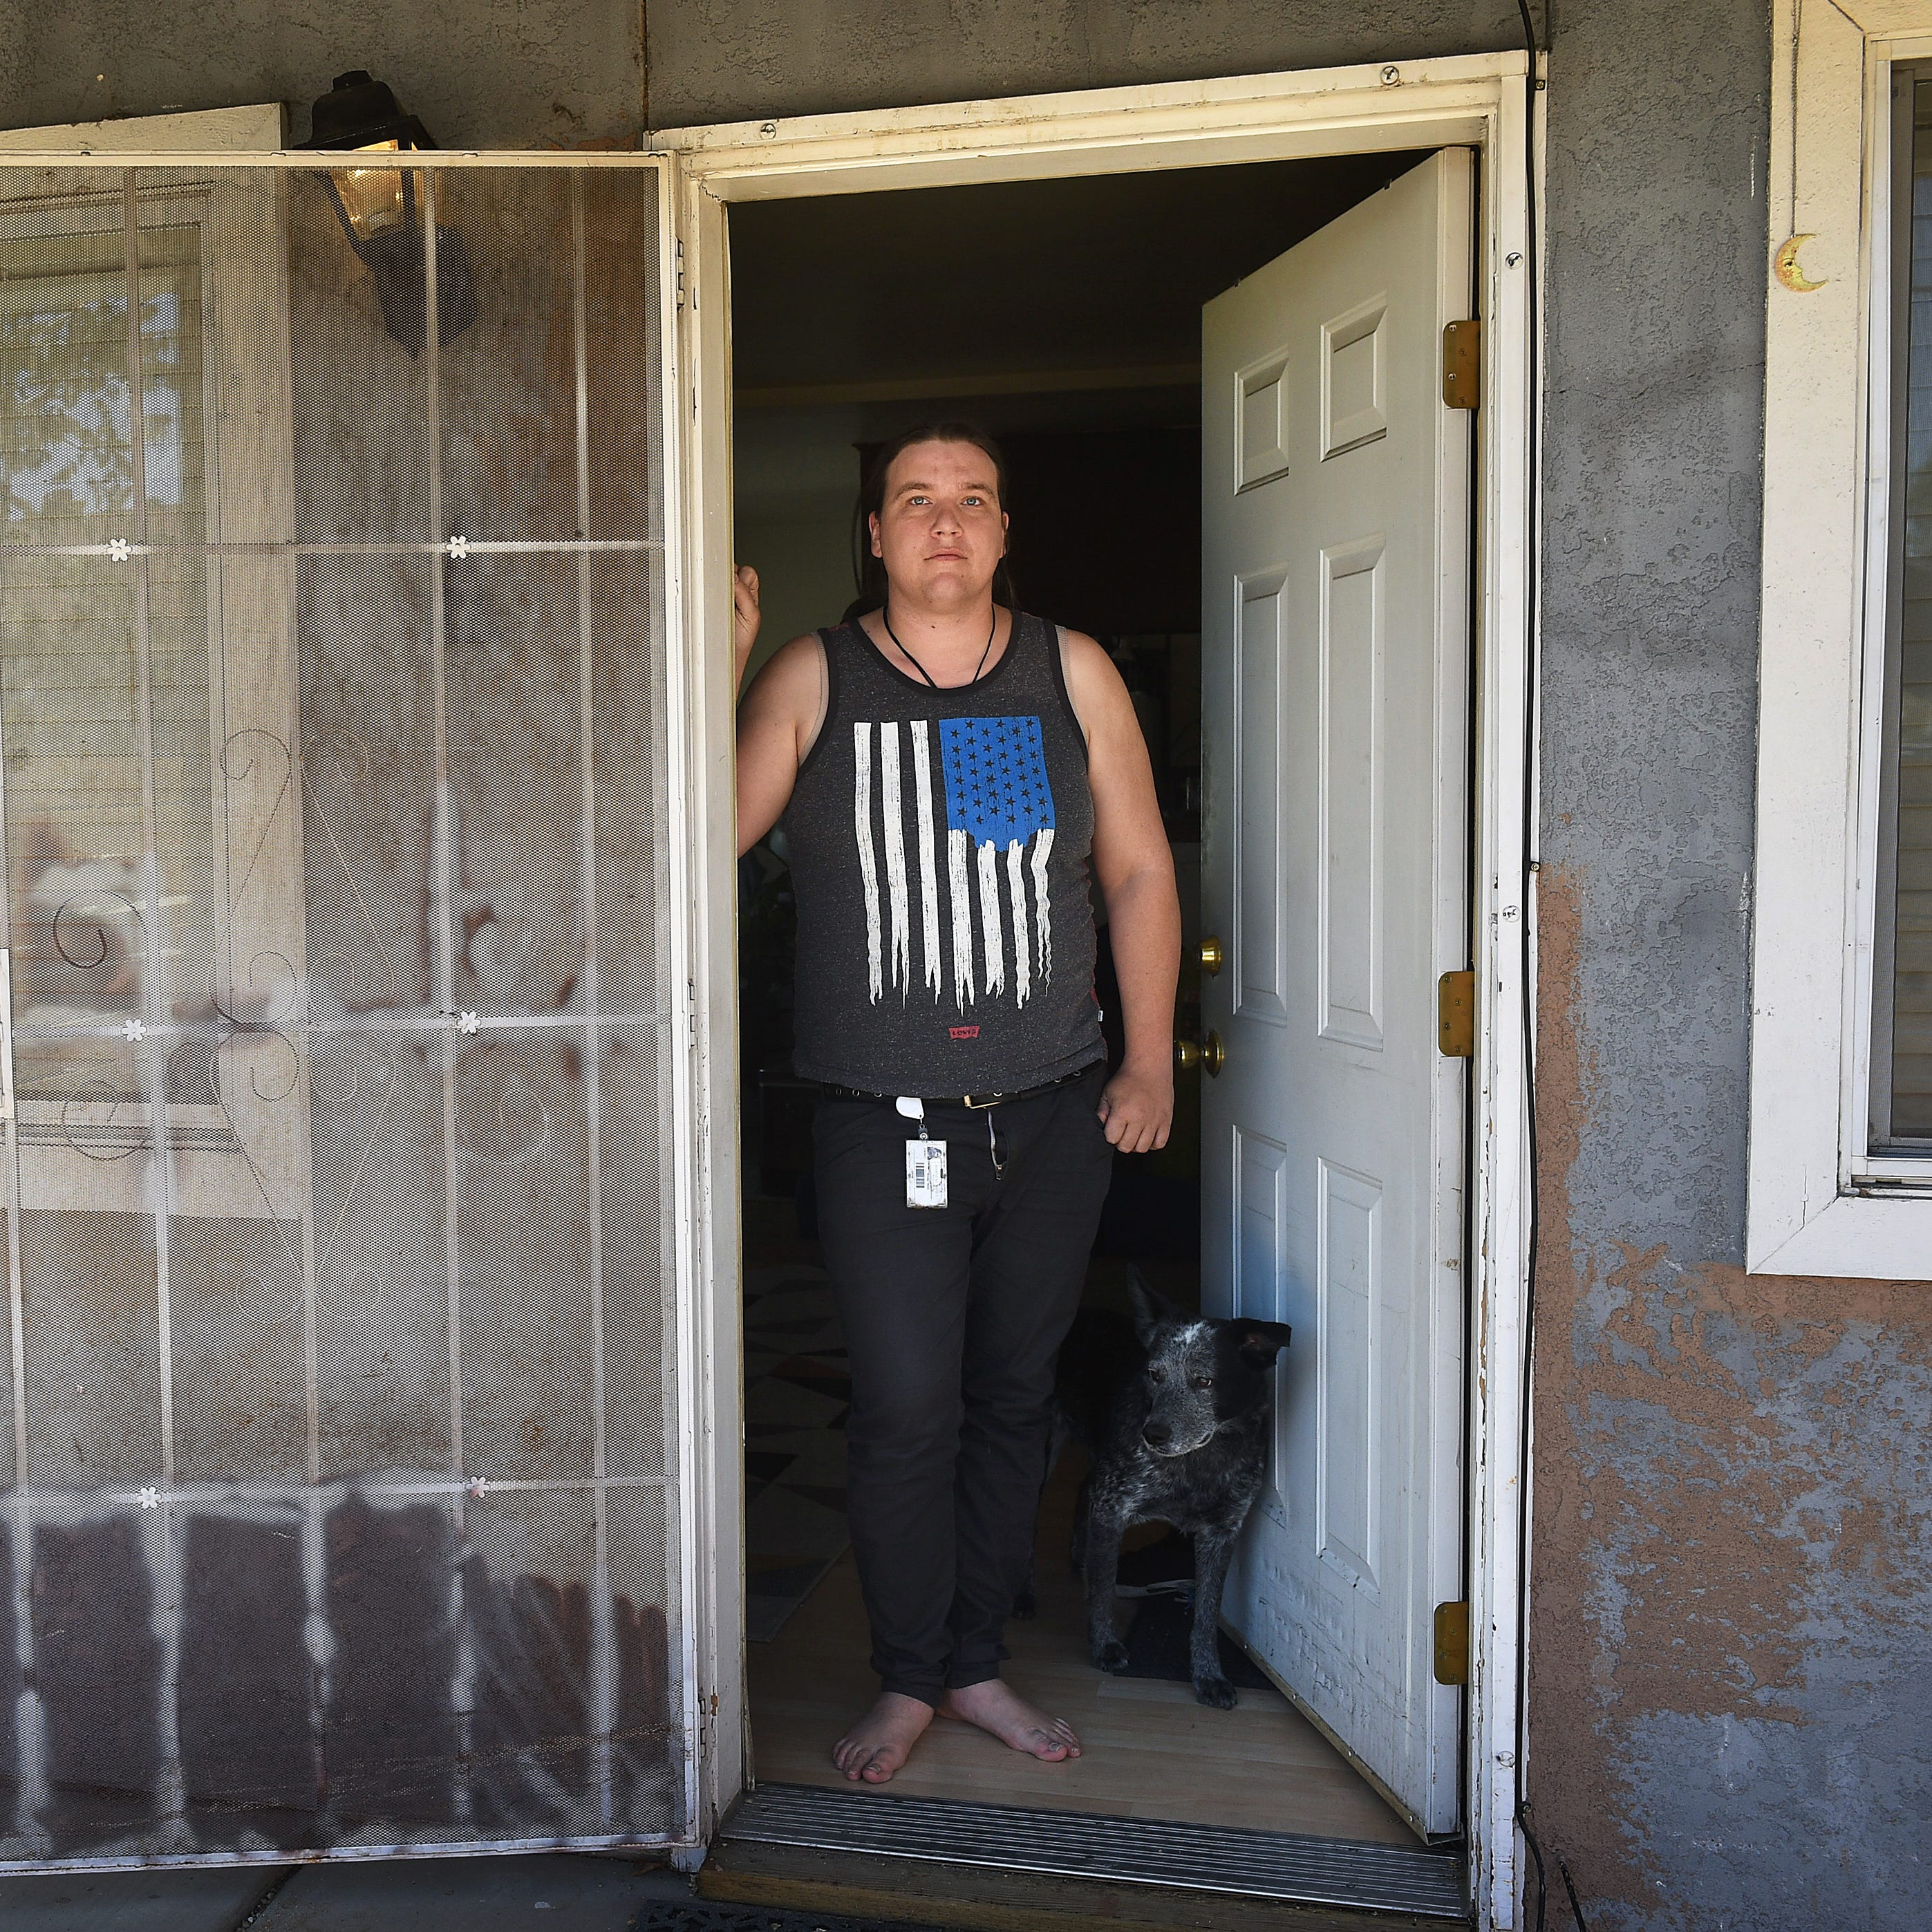 RGJ investigates: As evictions, rents spike in Reno, renters struggle to make ends meet